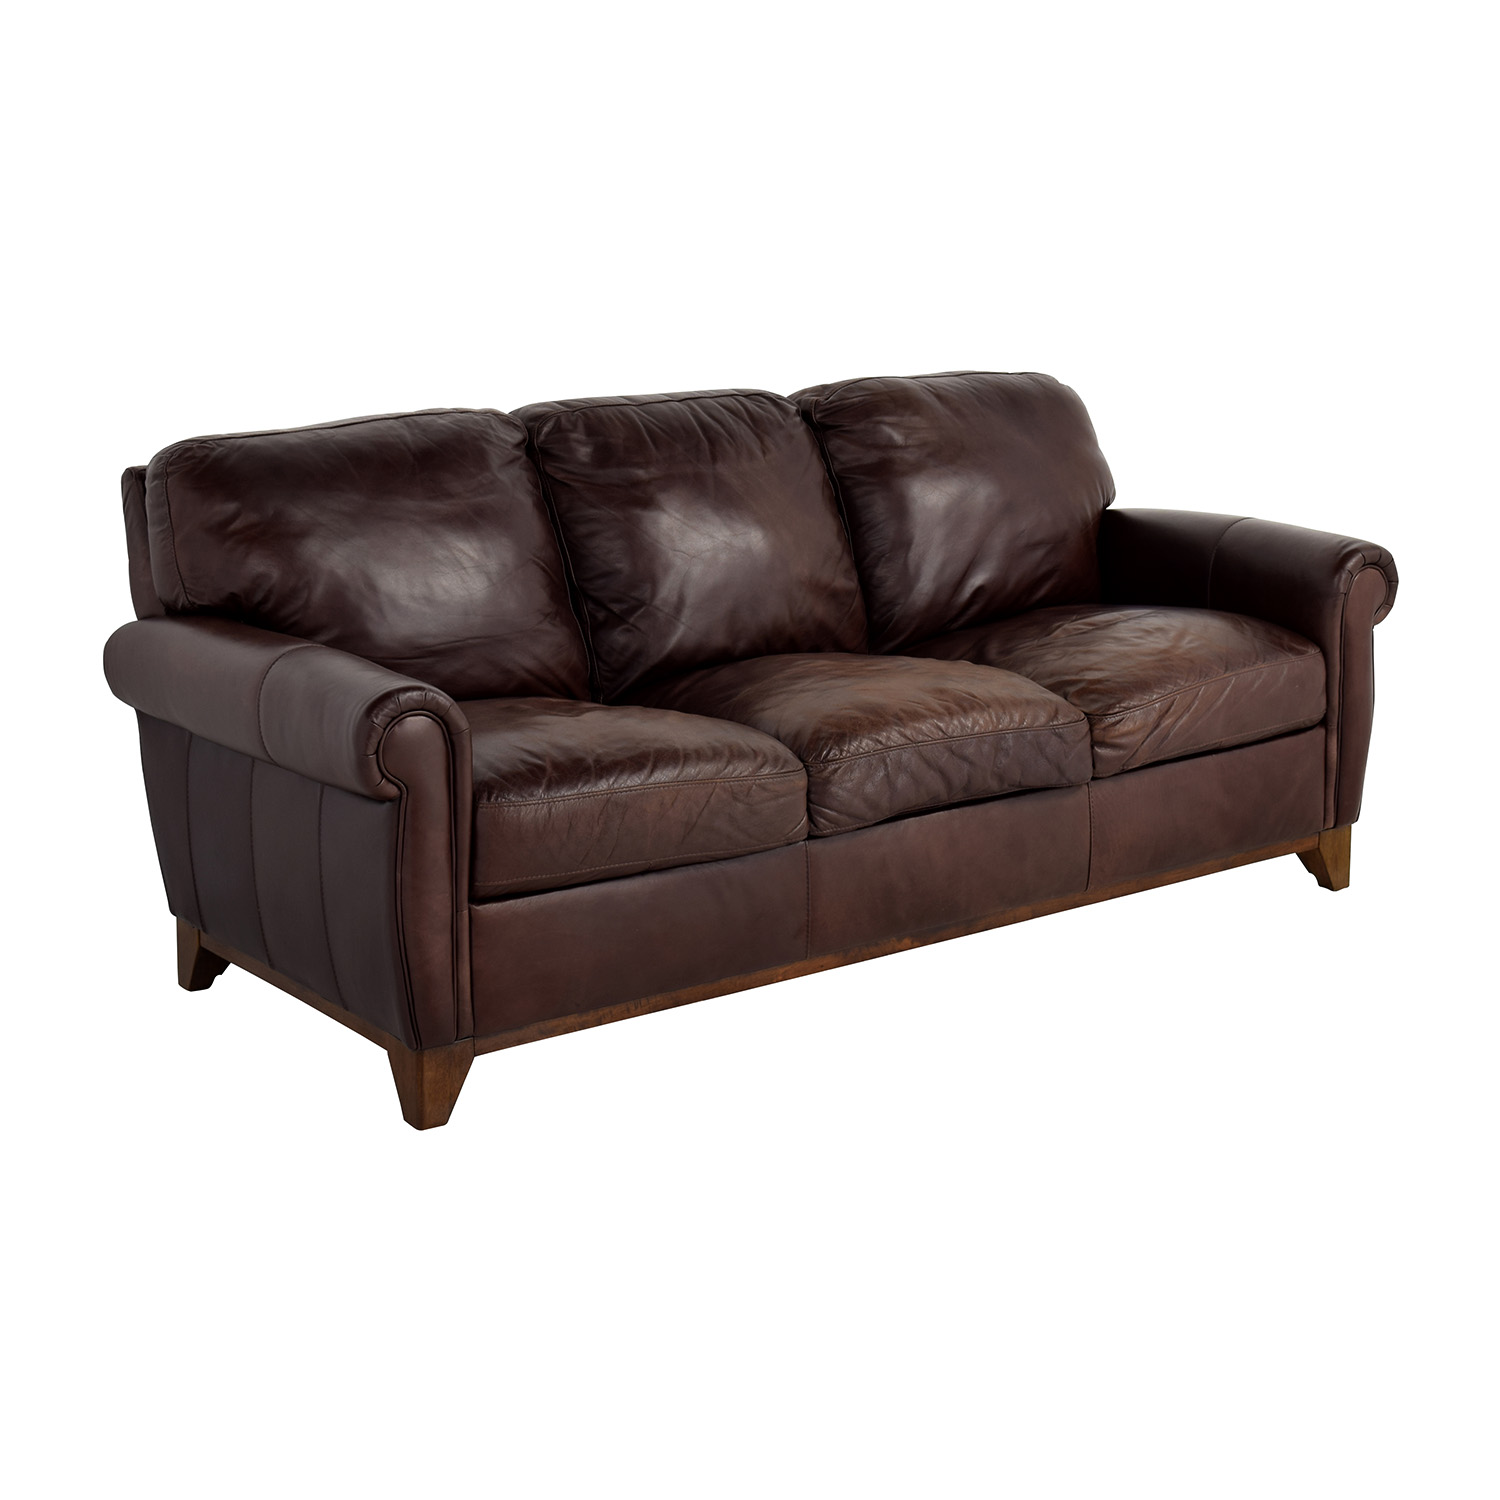 Raymour and flanigan brown sofa bed refil sofa for Couch und sofa